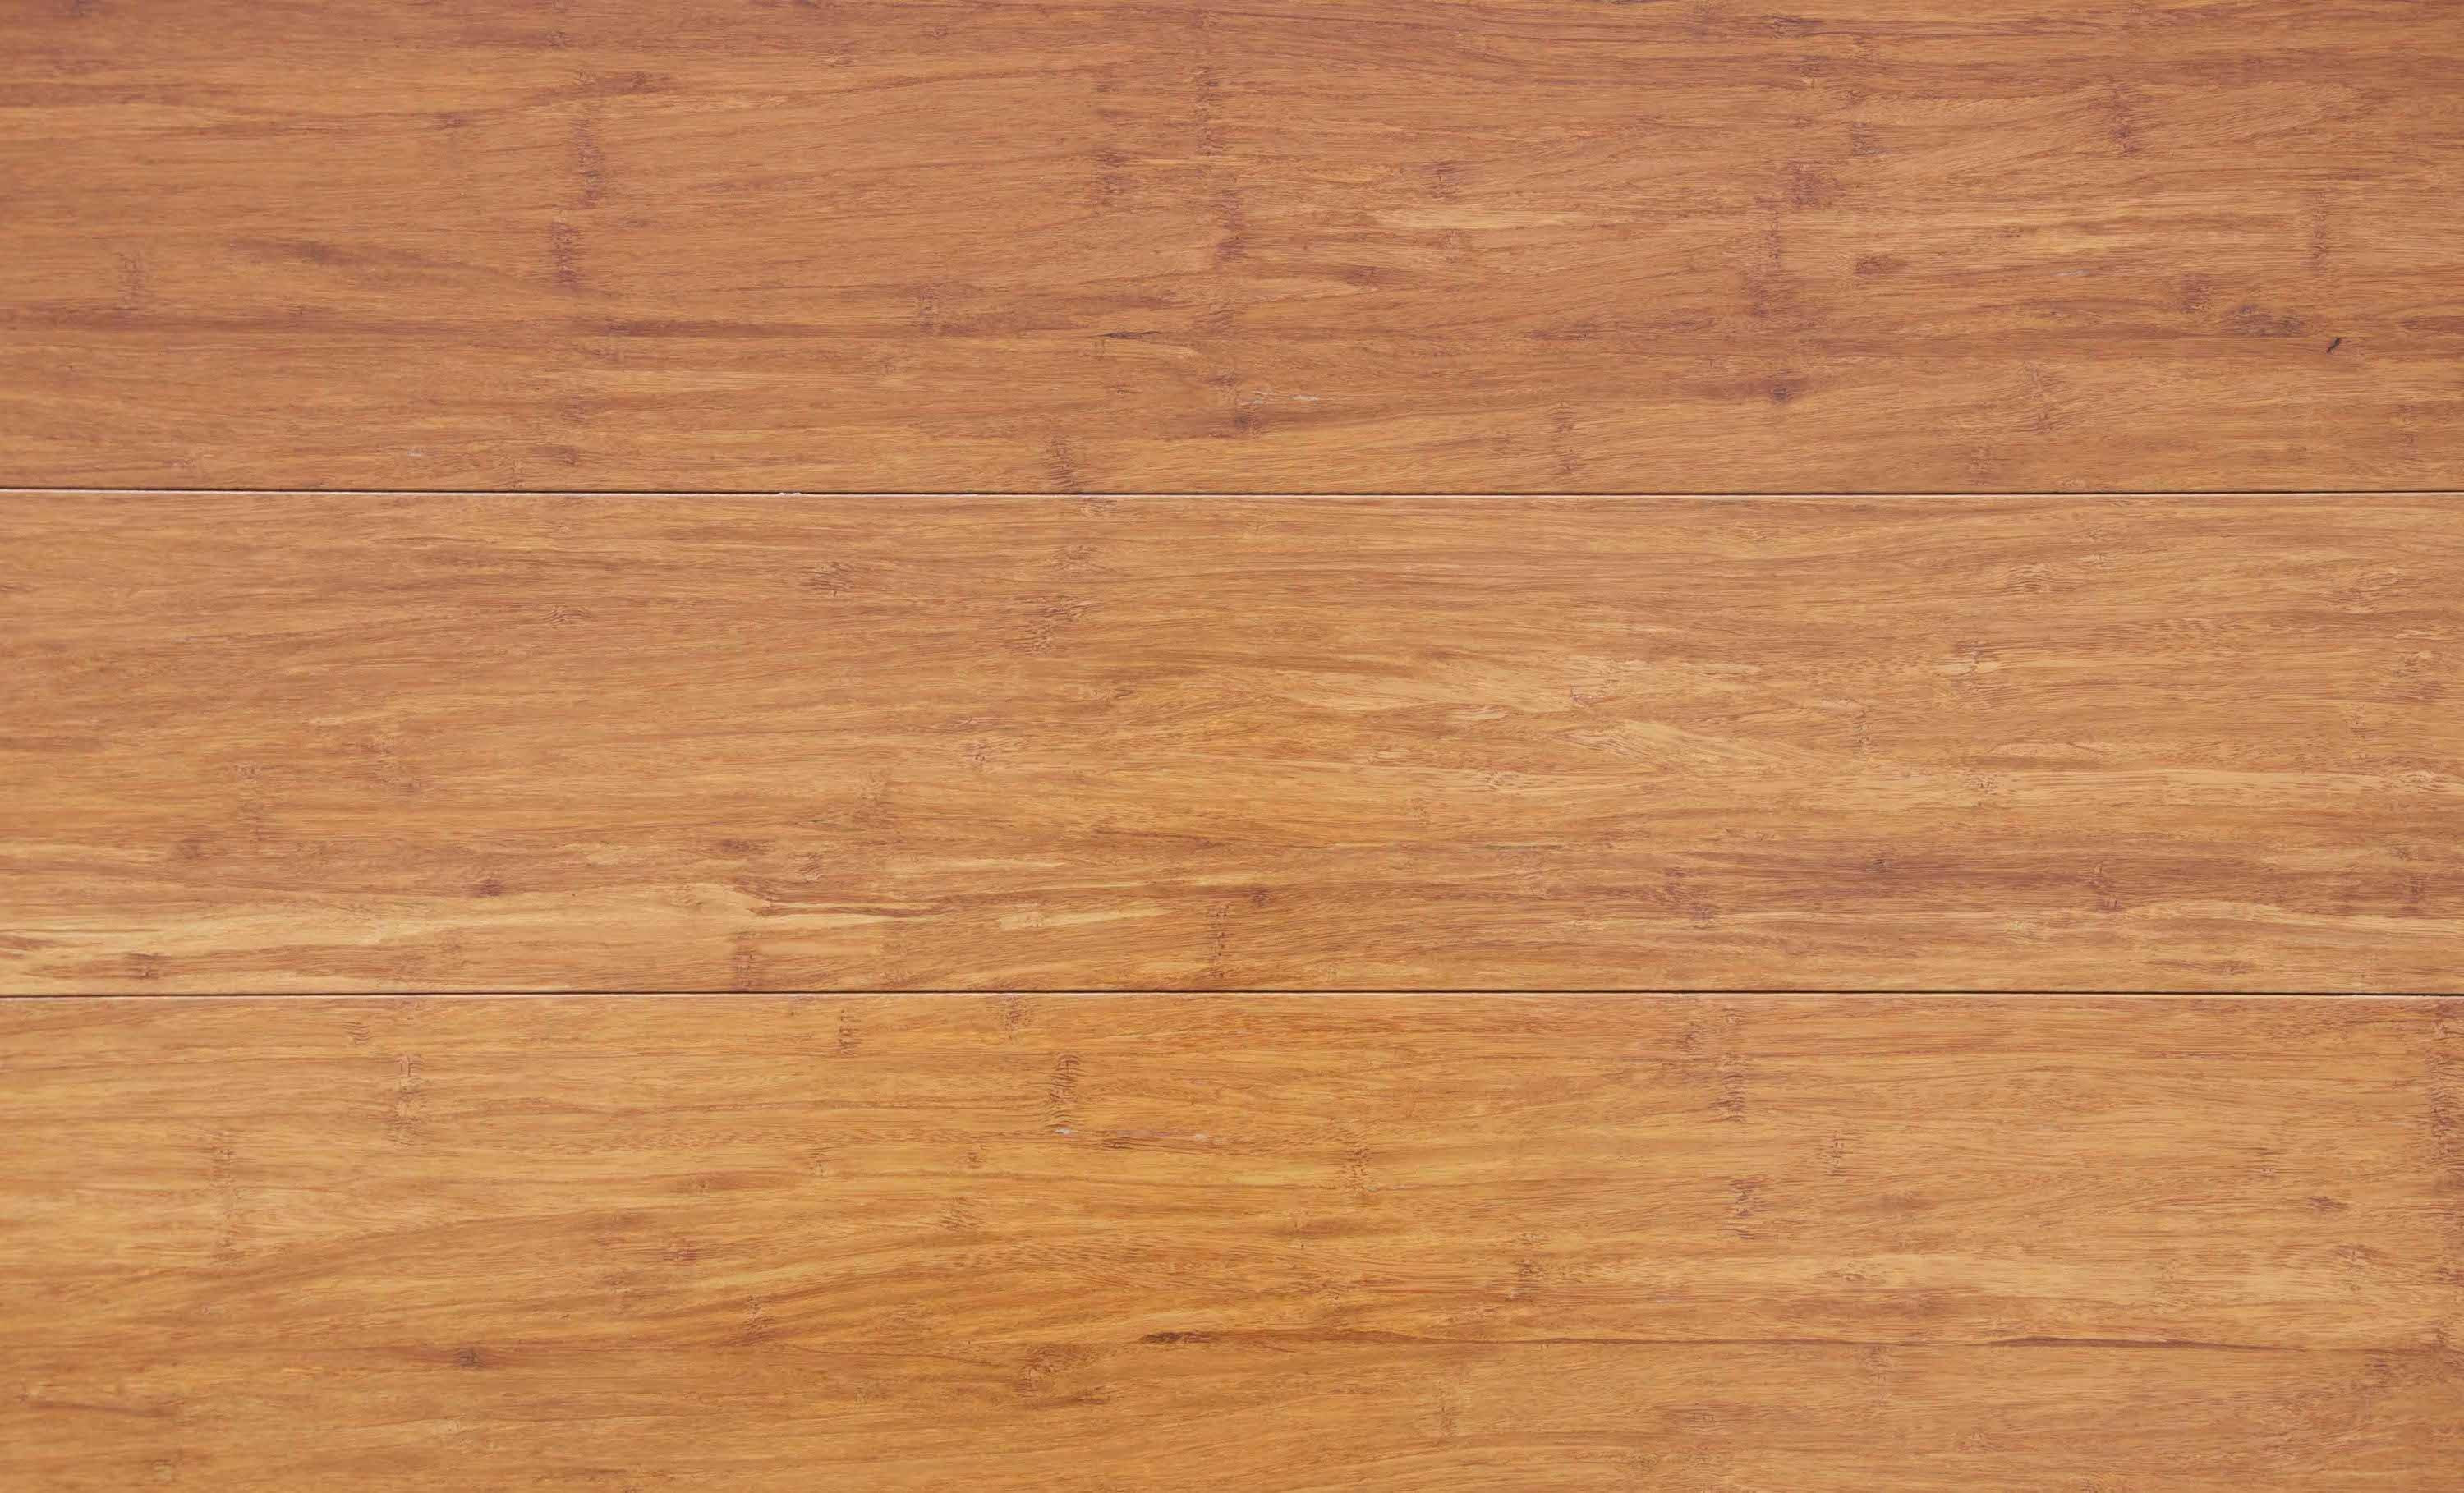 discount unfinished hardwood flooring of 37 best unfinished bamboo floor stock flooring design ideas regarding bamboo laminate flooring rhino style moyen wood effect vinyl floor